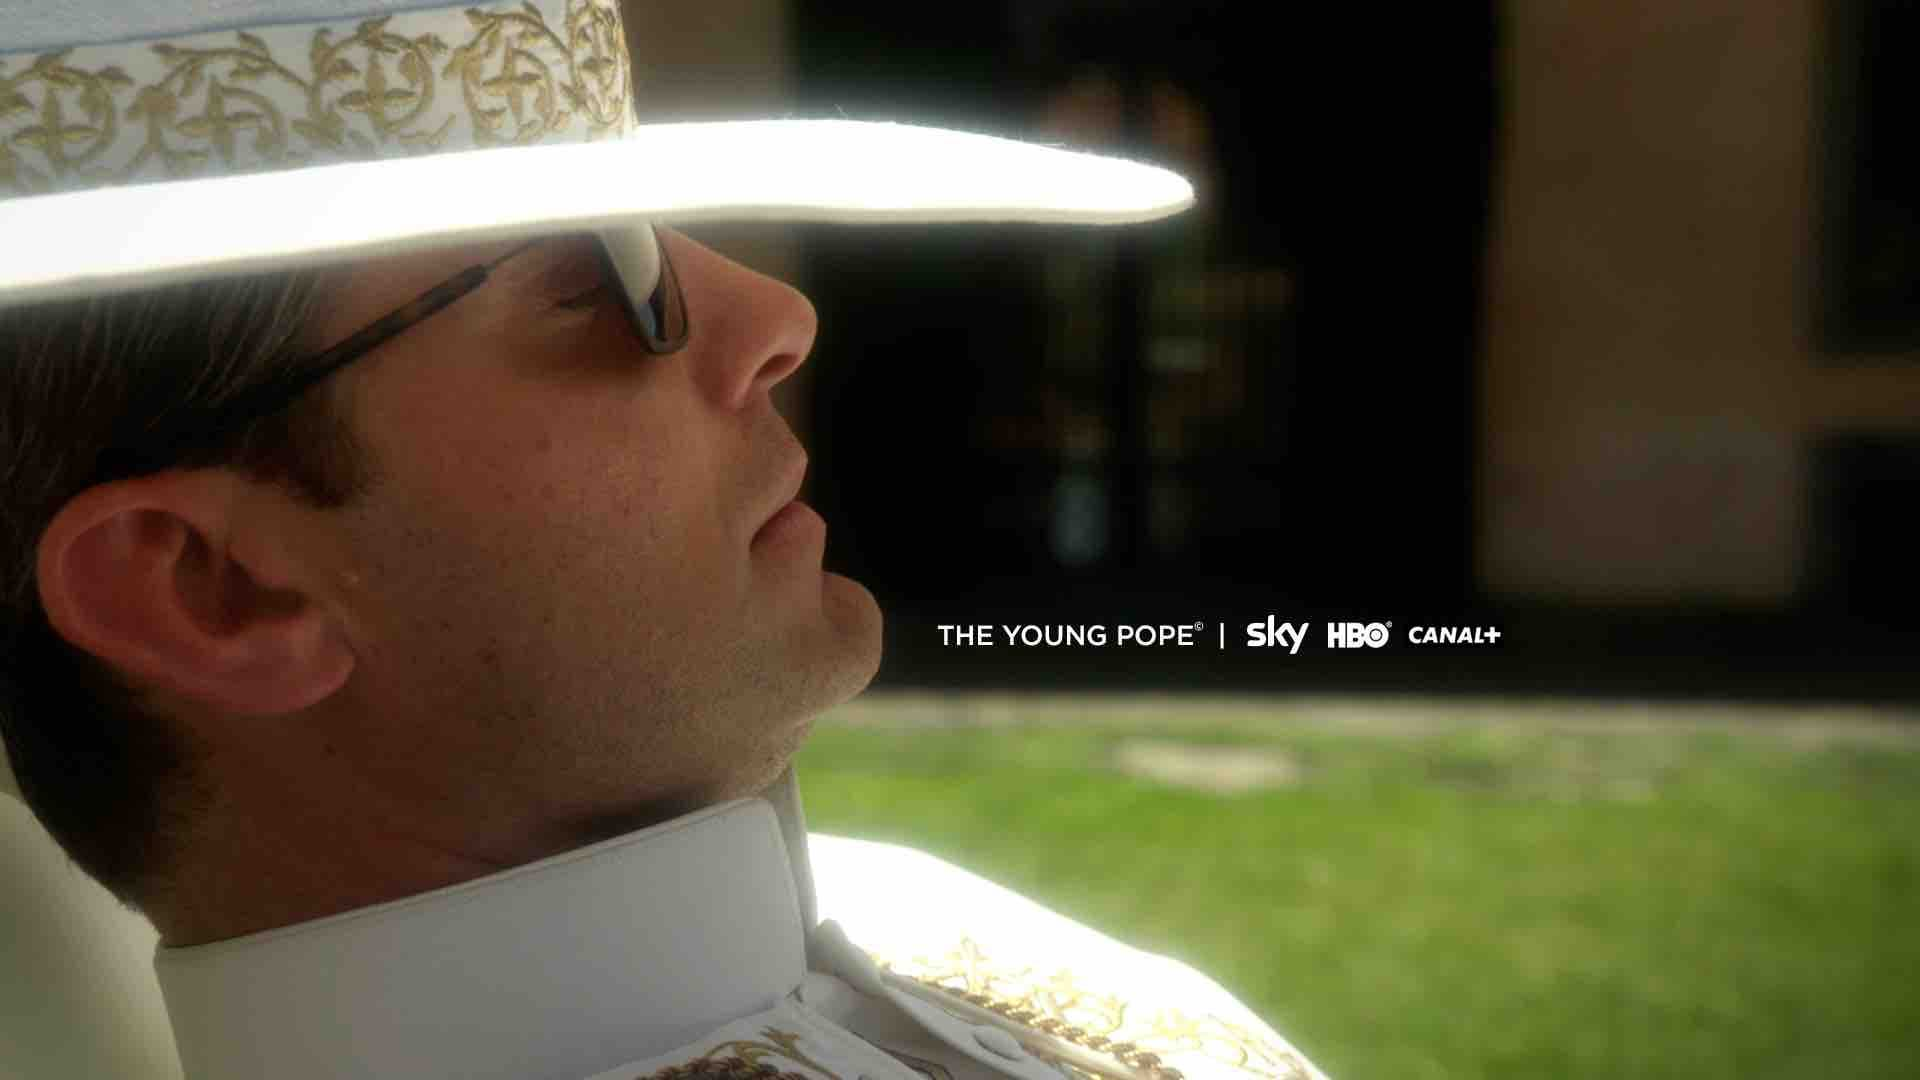 THE YOUNG POPE - prima immagine © Sky, HBO, Wildside 2015